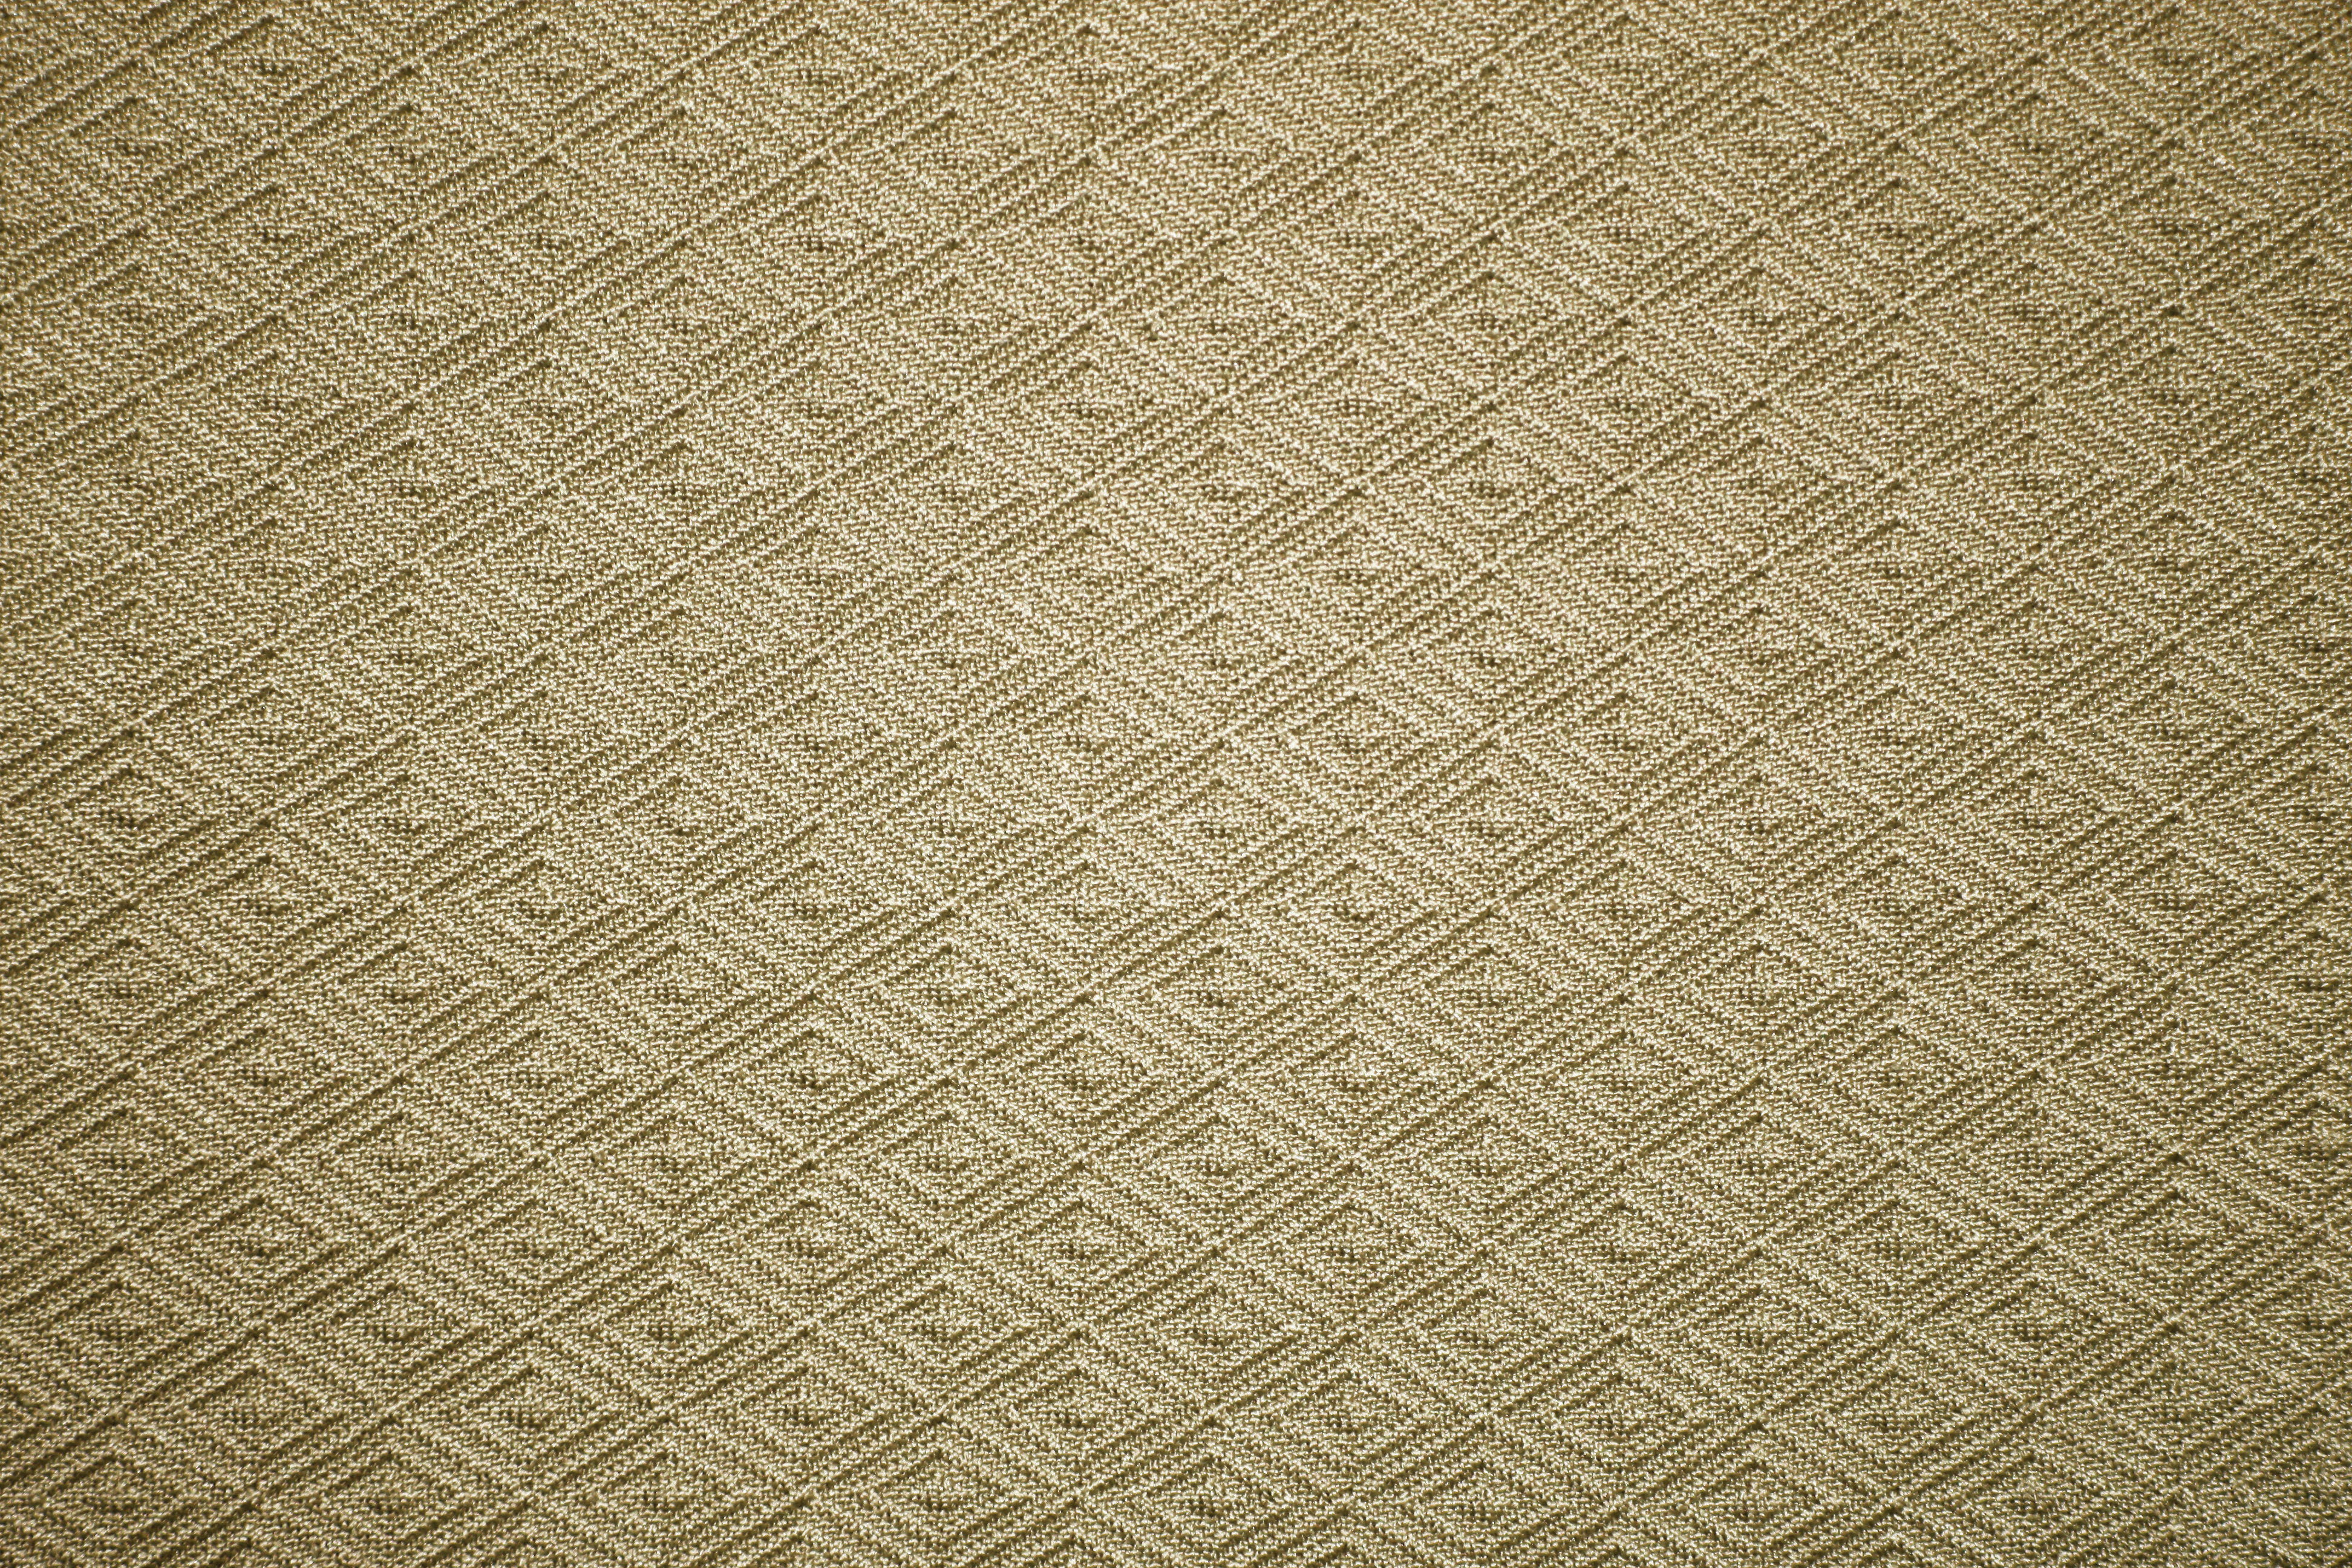 Patterns For Knit Fabric : Khaki Knit Fabric with Diamond Pattern Texture Picture Free Photograph Ph...